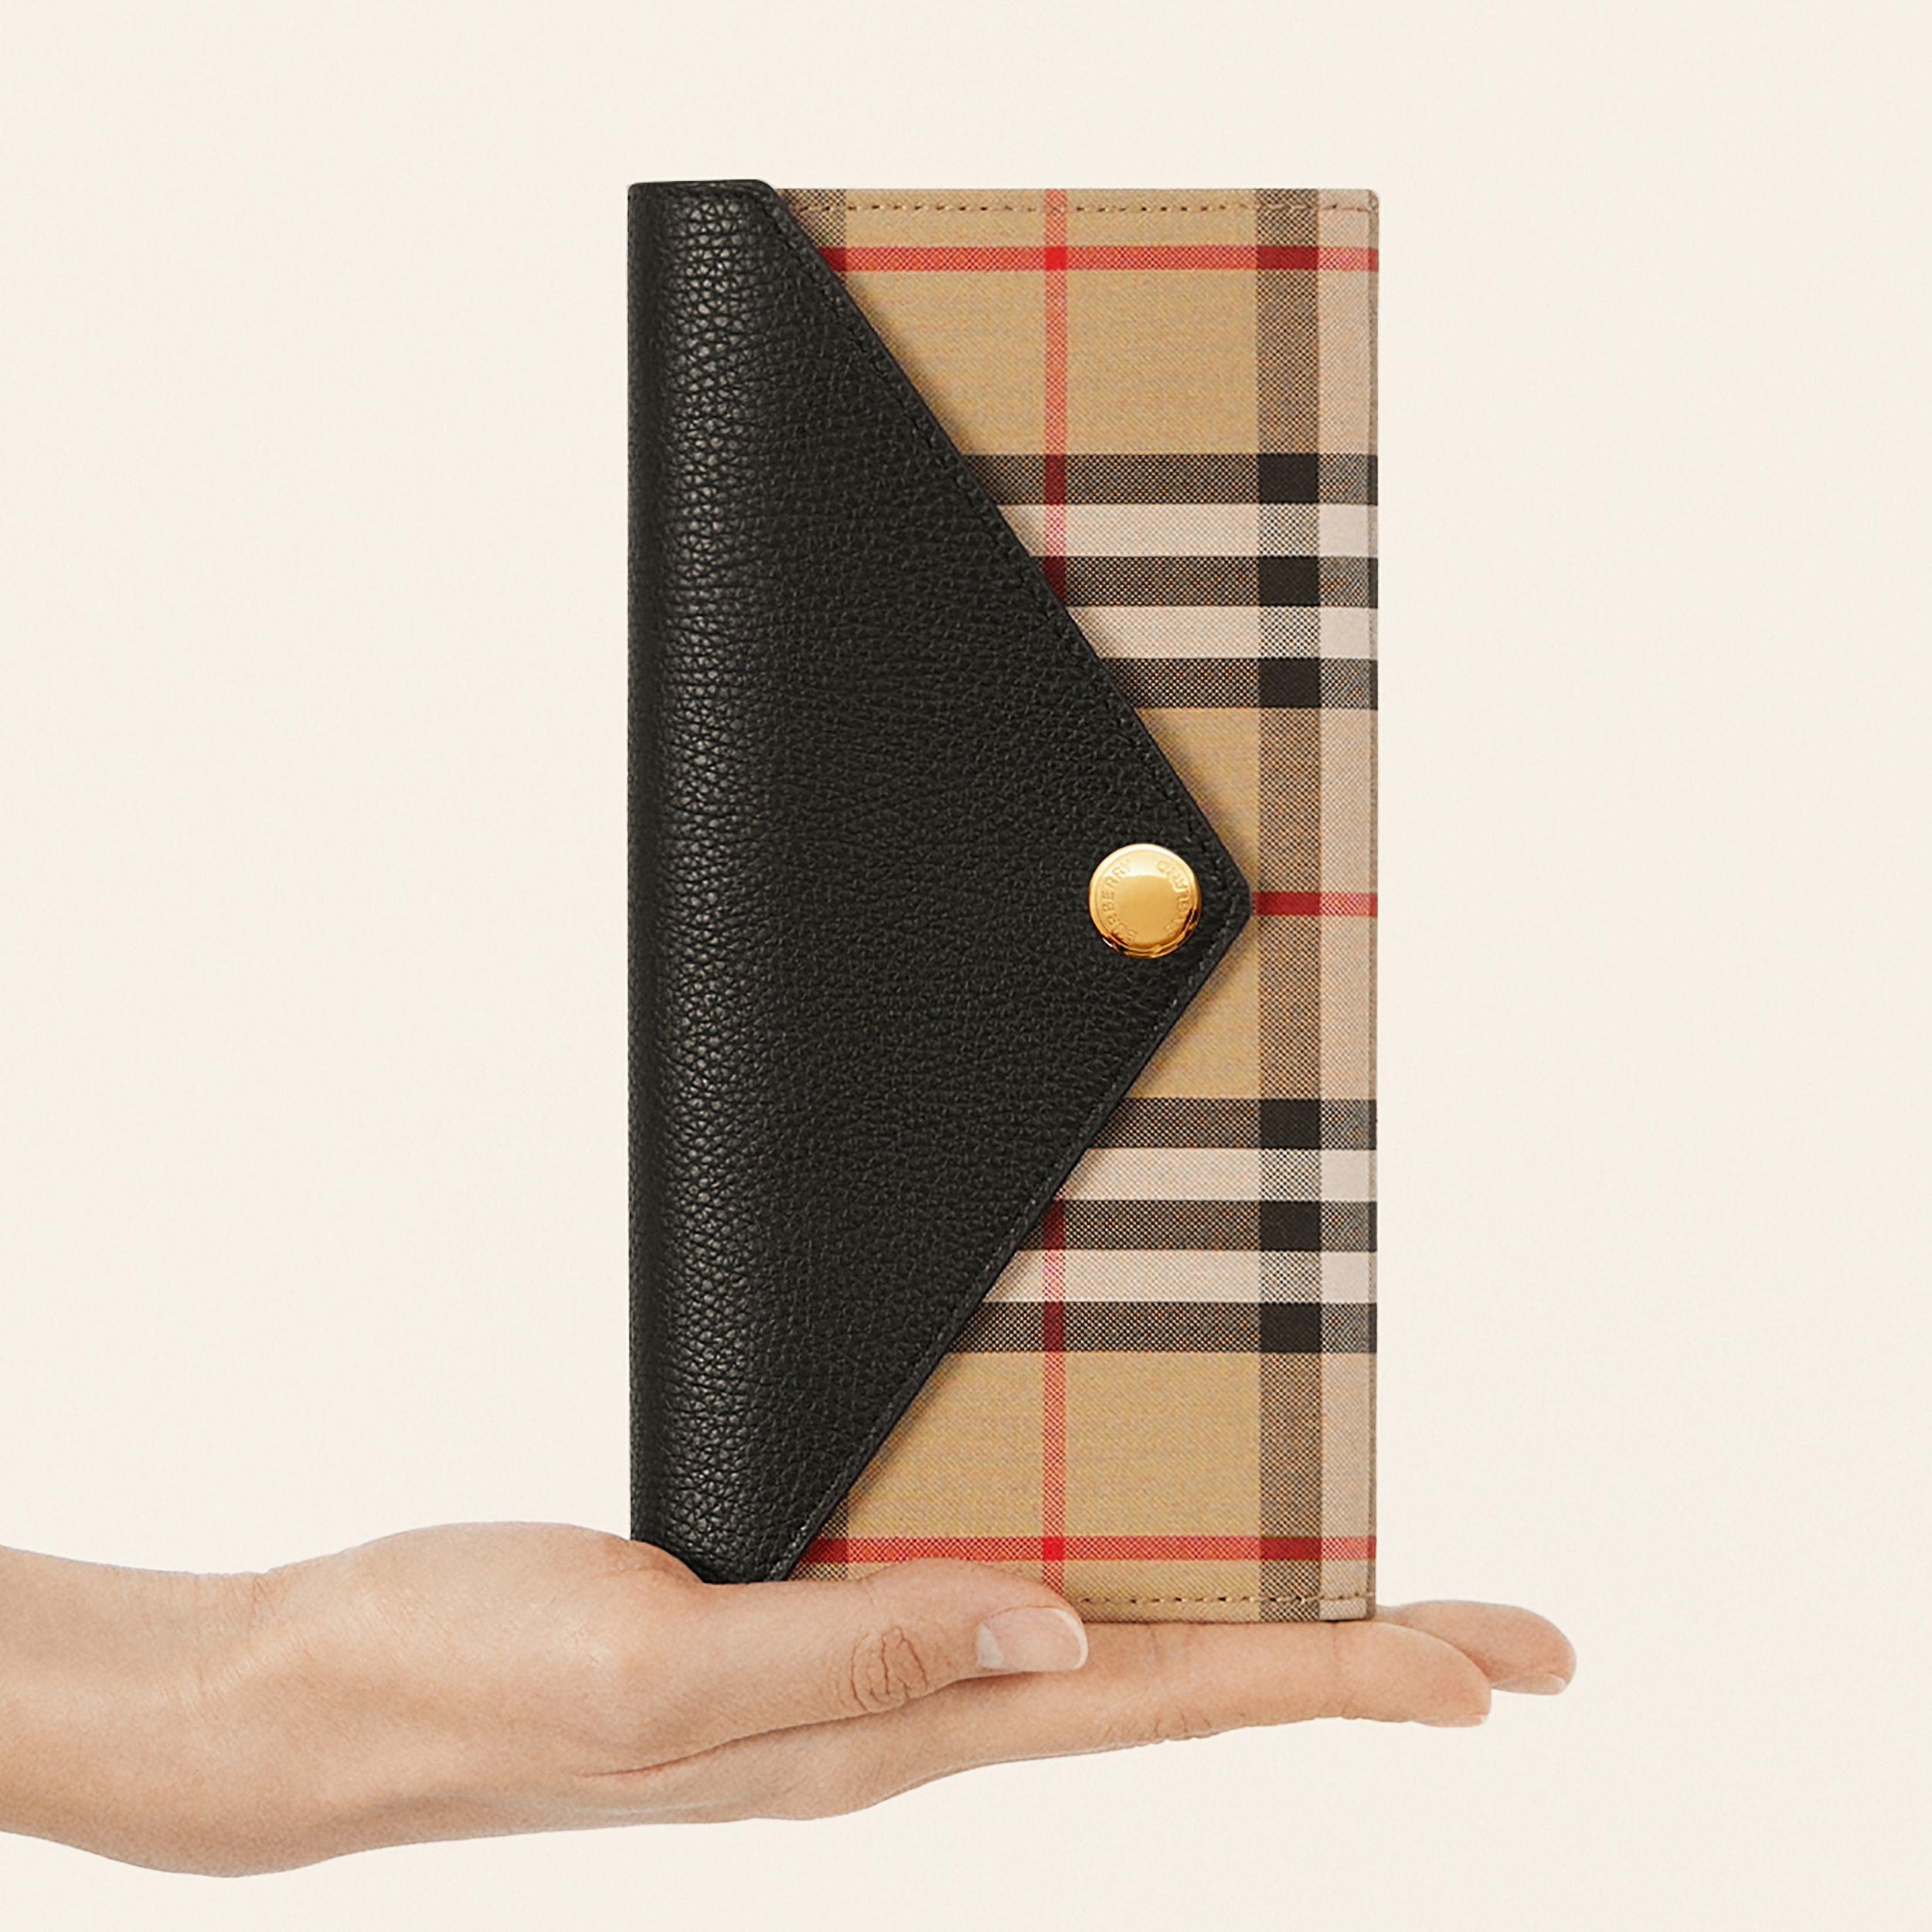 Vintage Check and Leather Continental Wallet in Black - Women | Burberry - 2